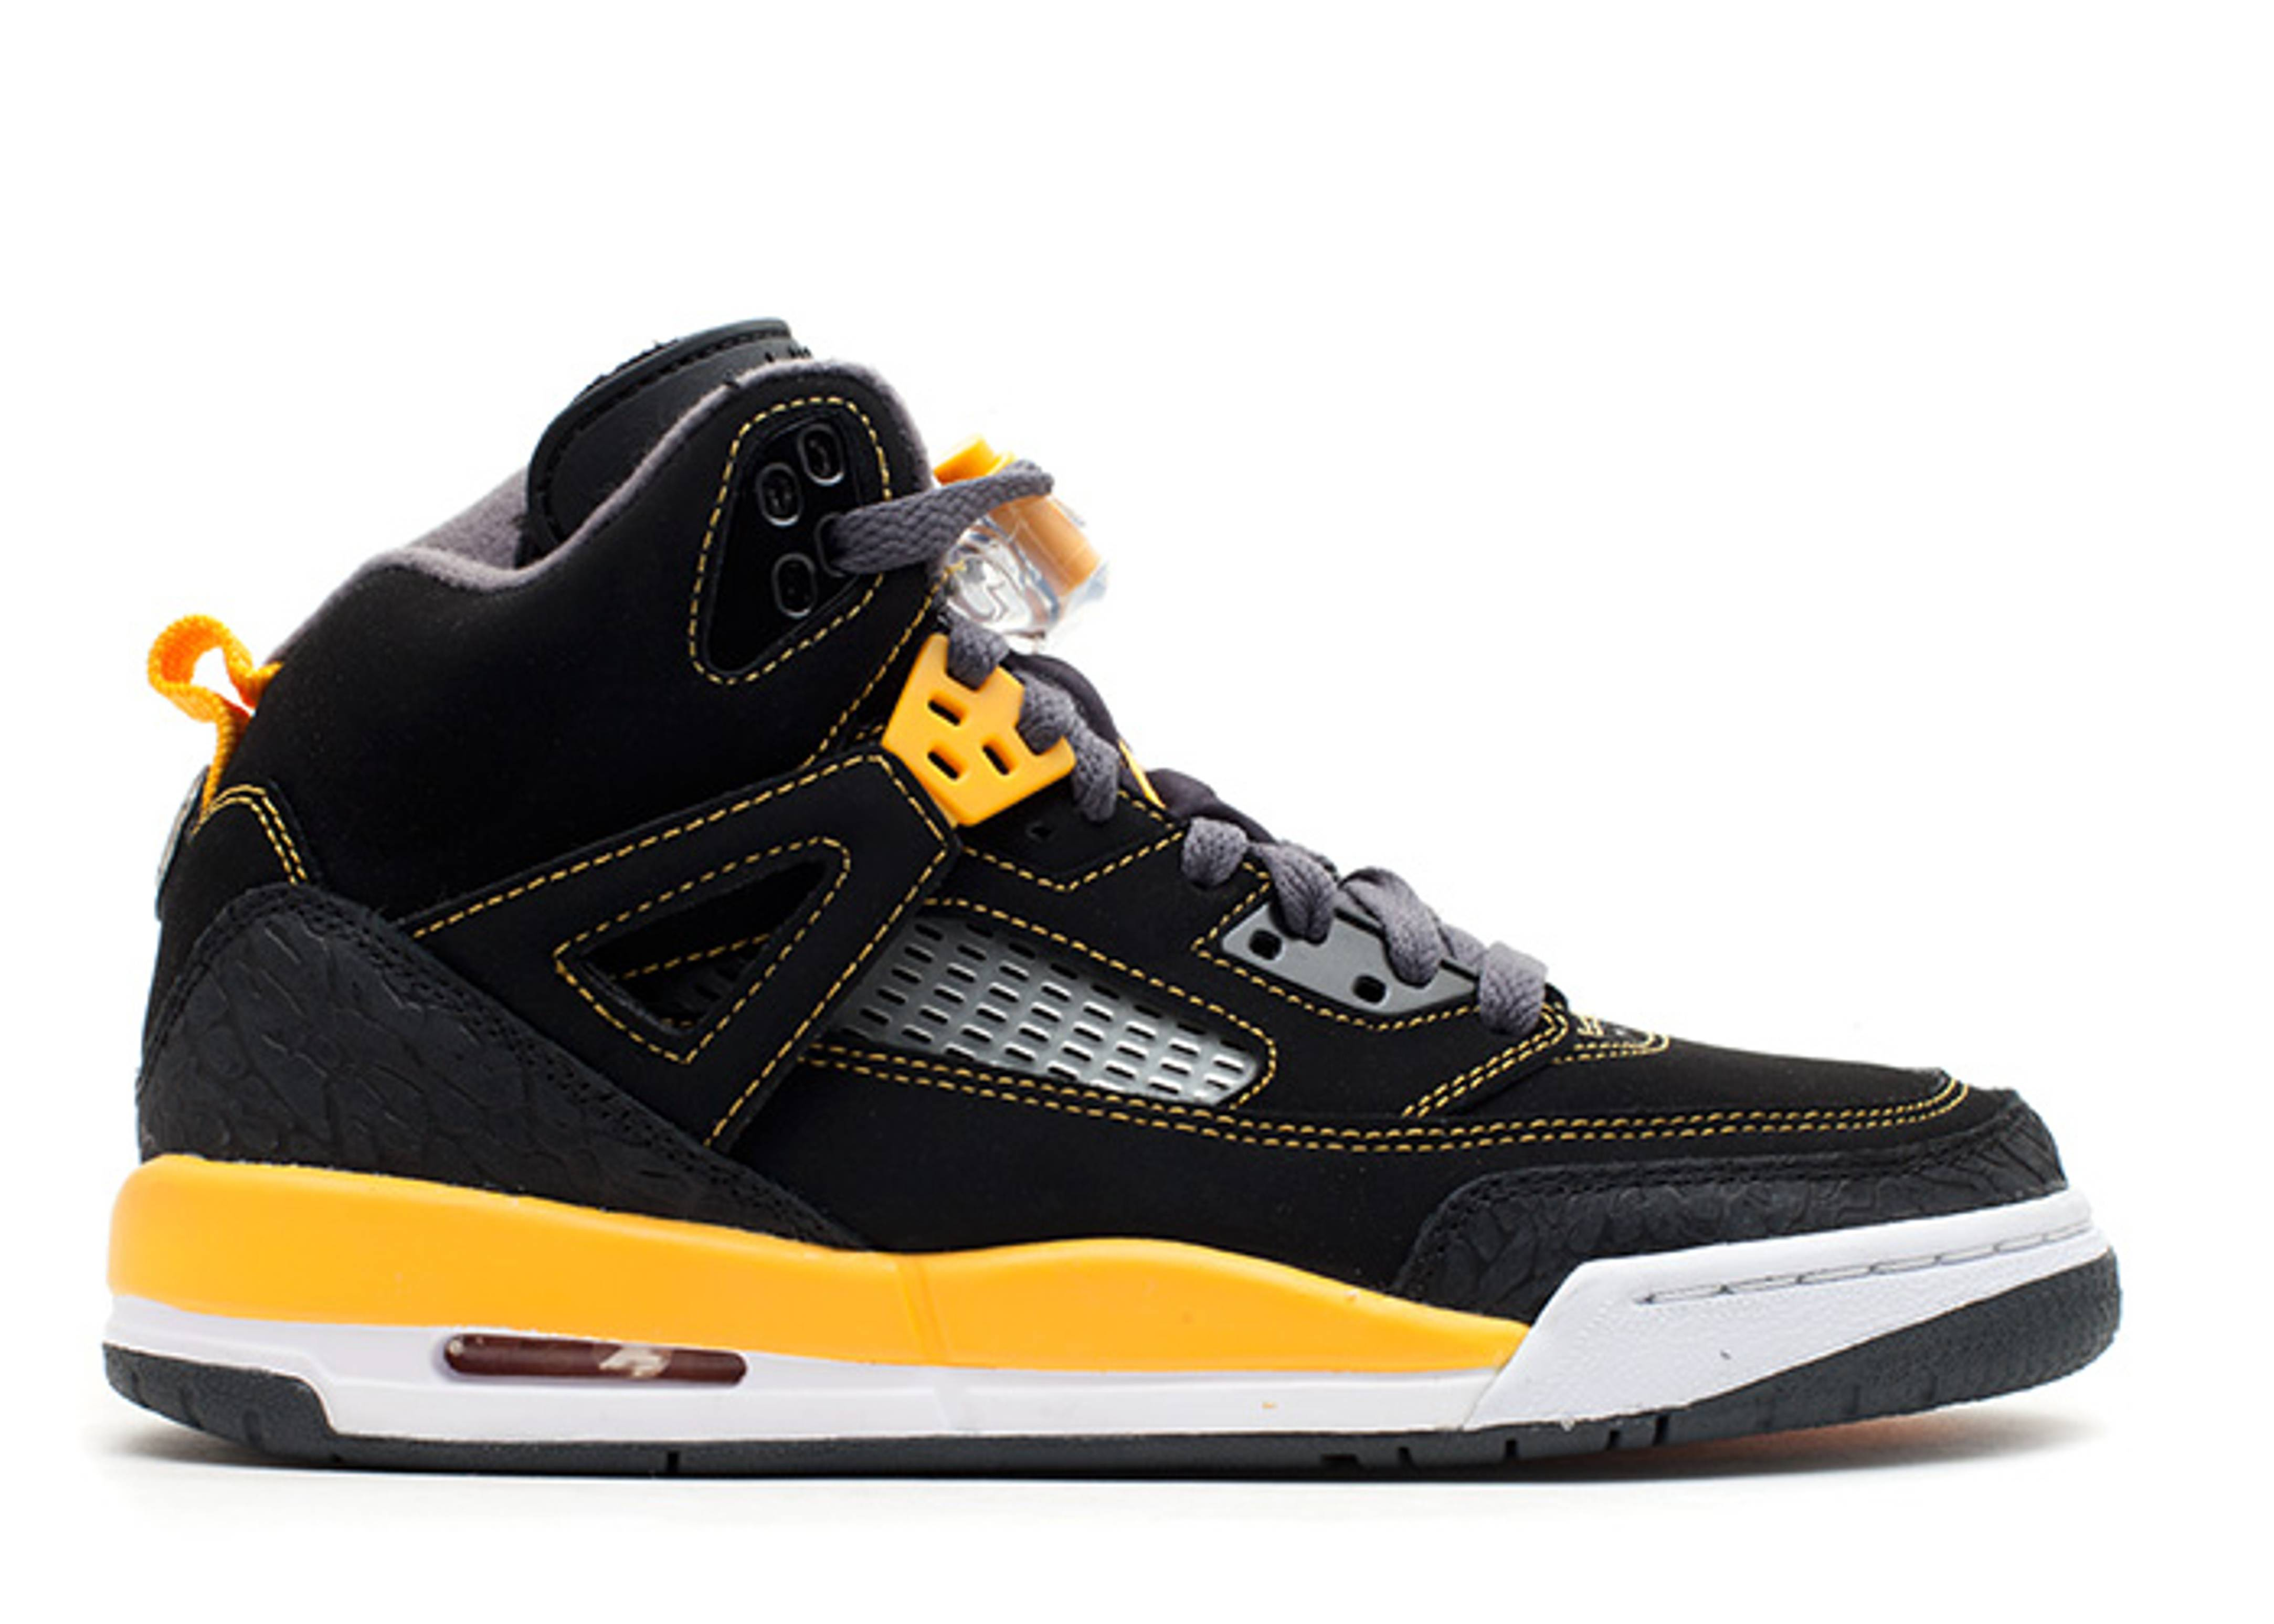 jordan spizike black yellow